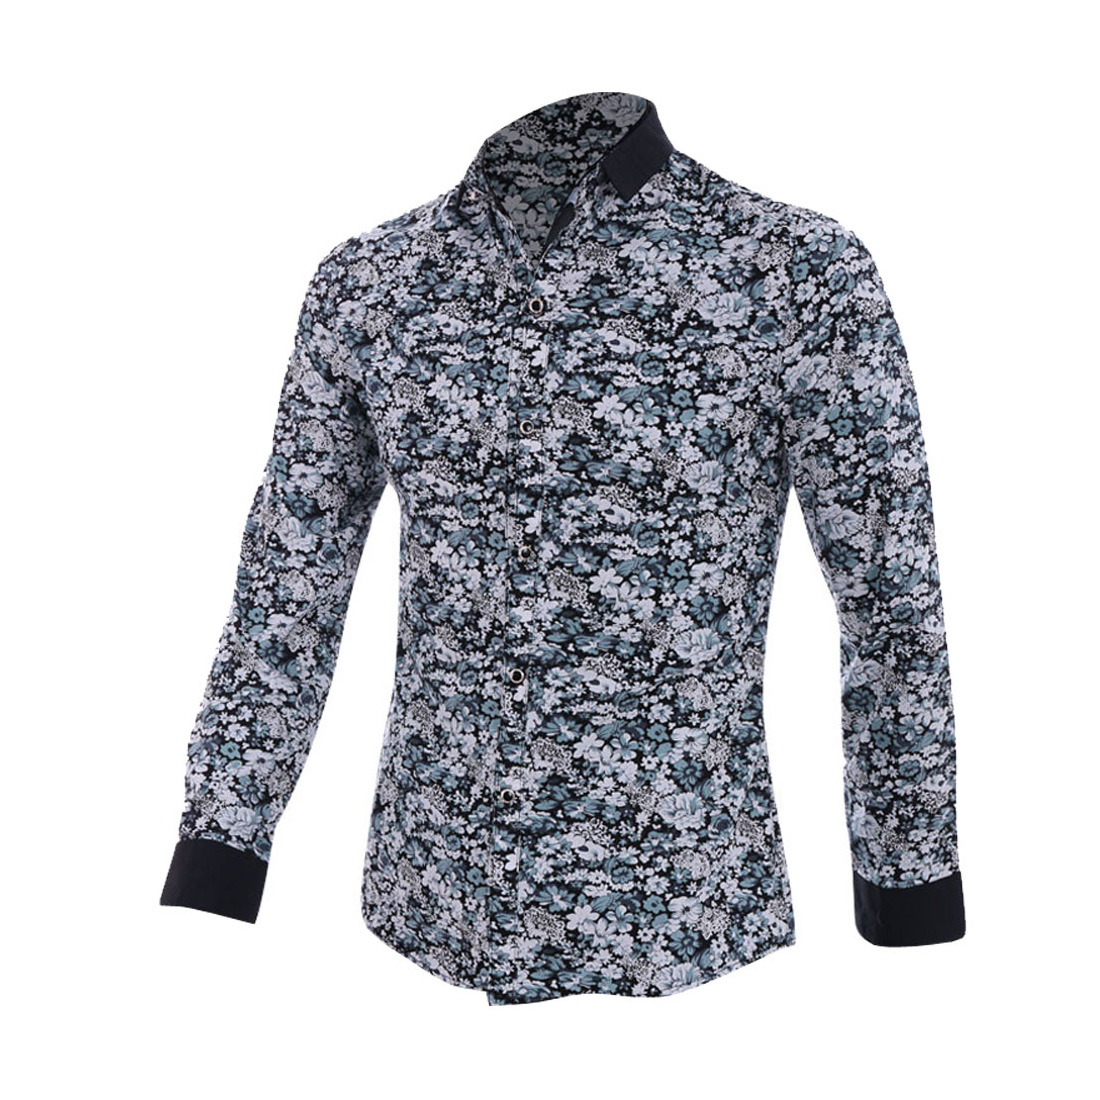 Blue Point Collar Reversible Cuff Floral Pattern Button Closure Men Shirt S